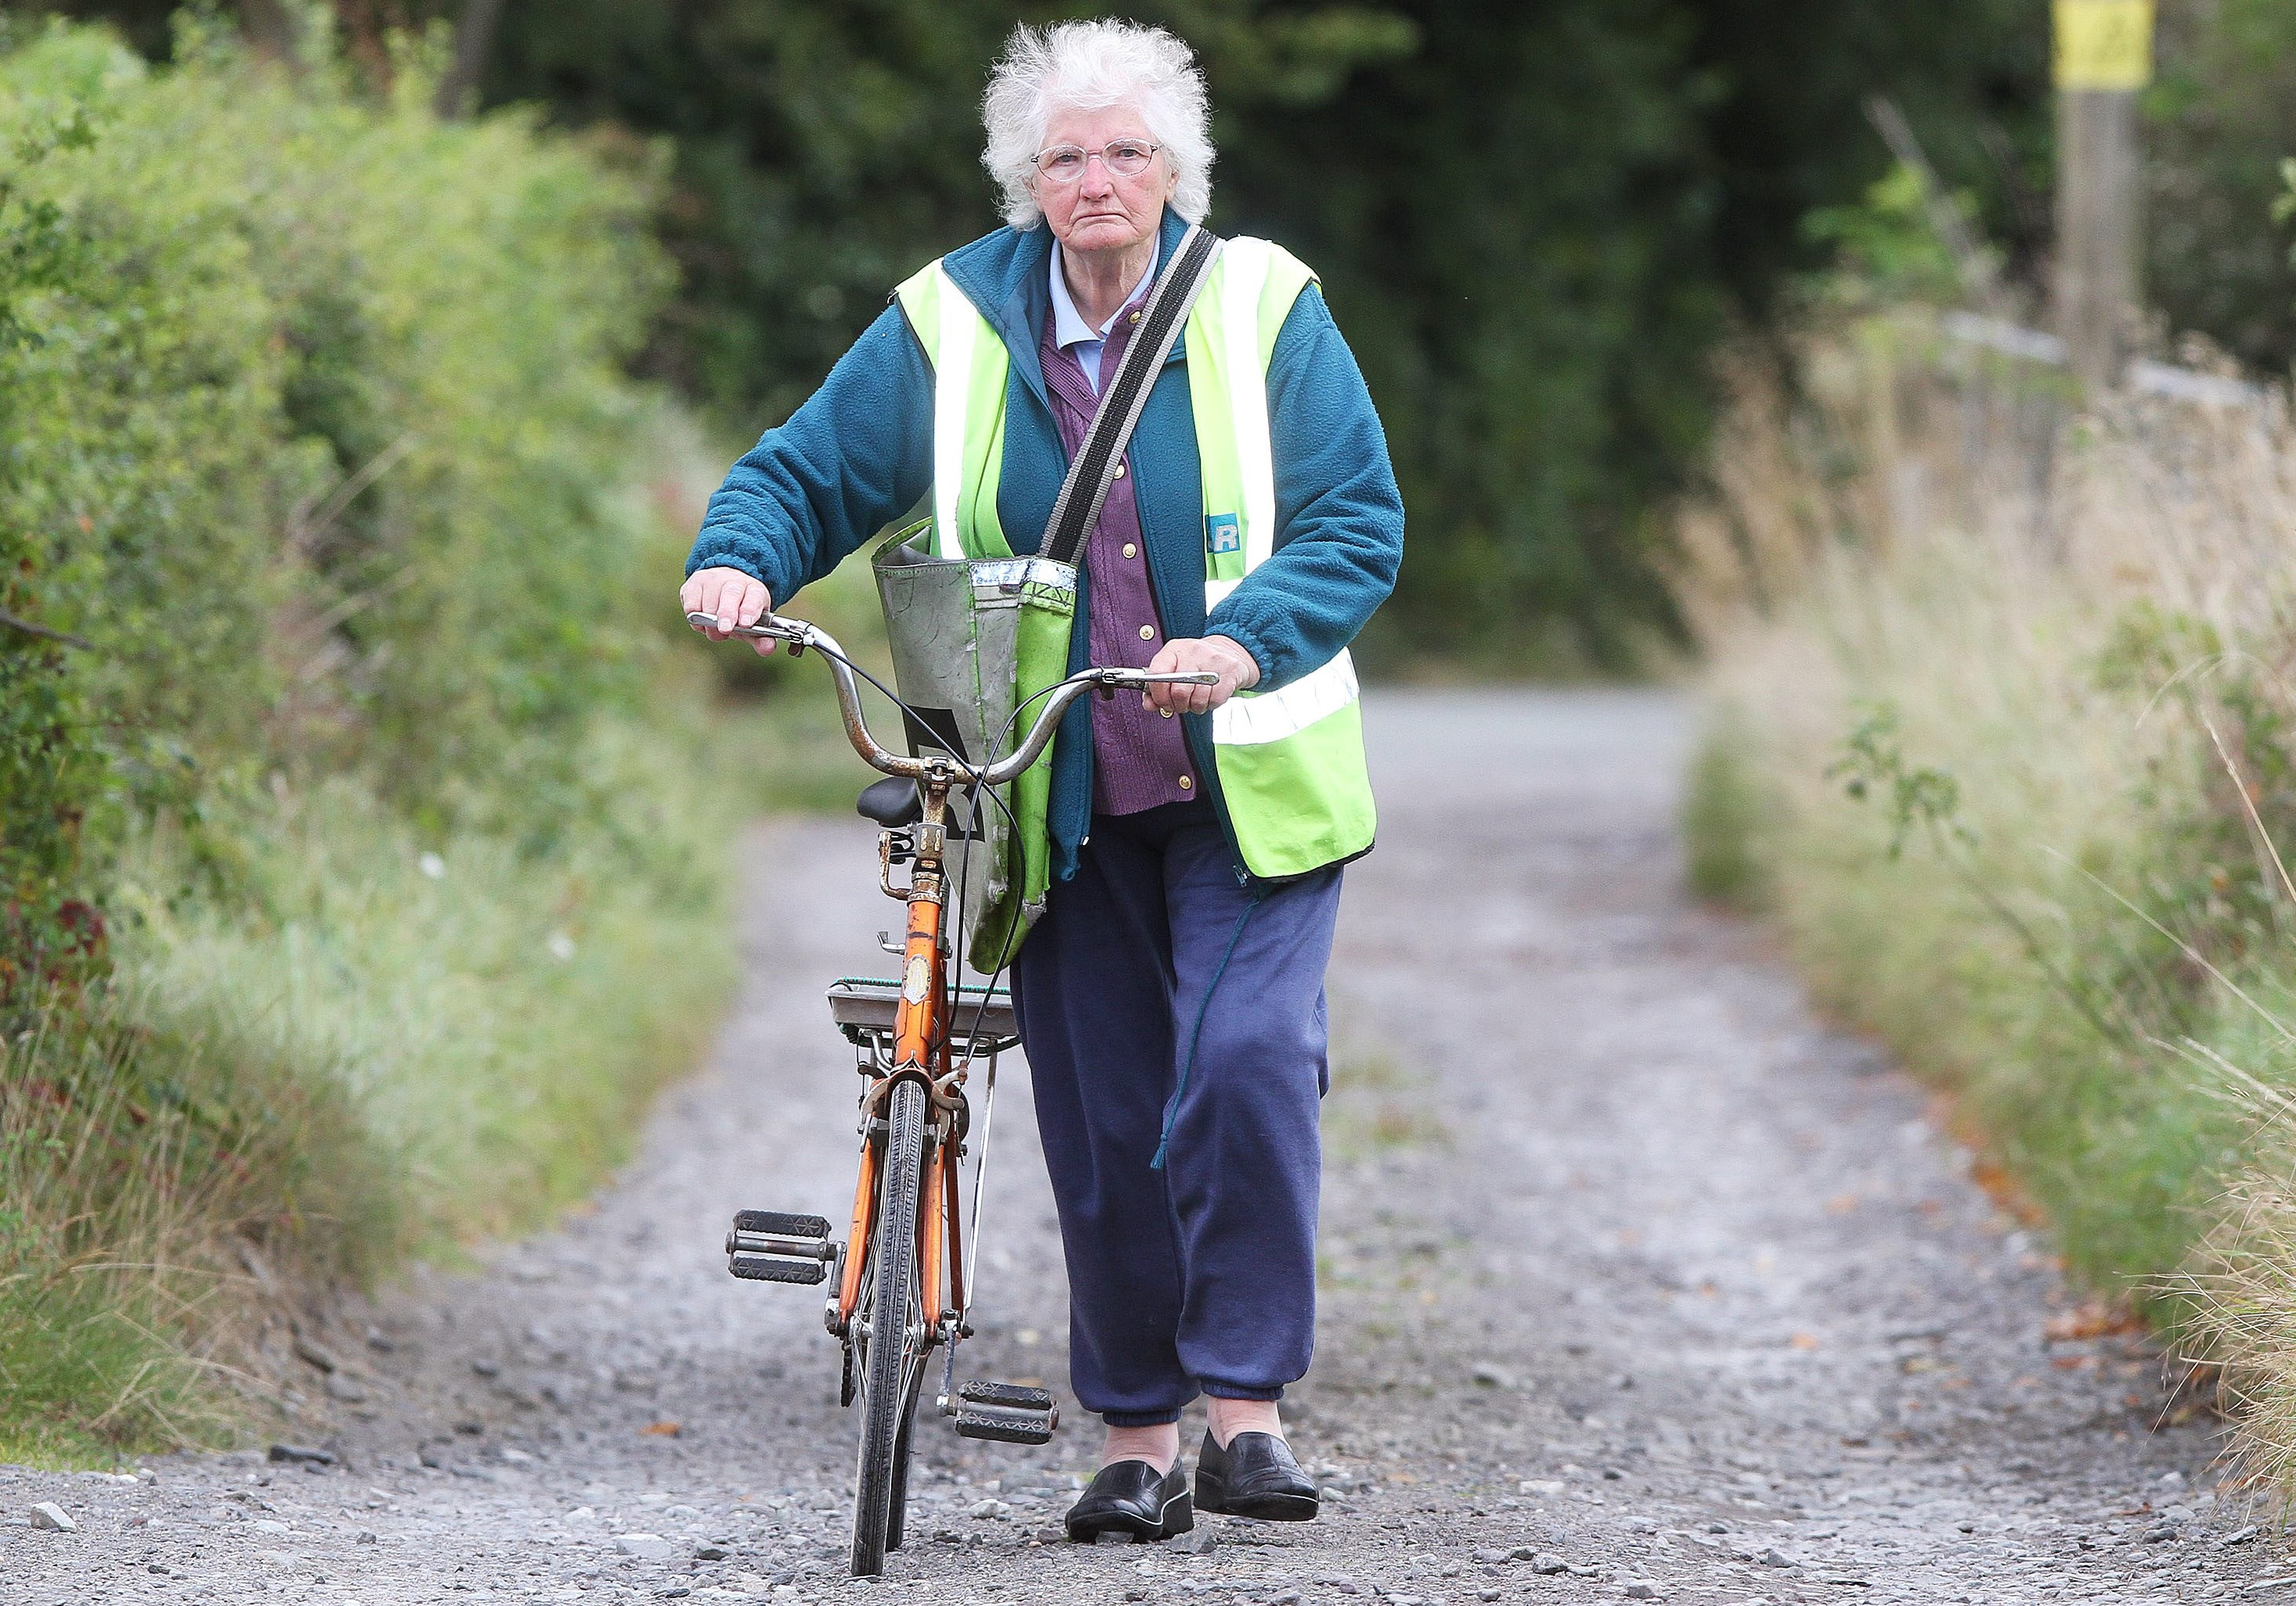 Joyce pushes her trusty bike along a country road. She loves the exercise and fresh air when she's on her round